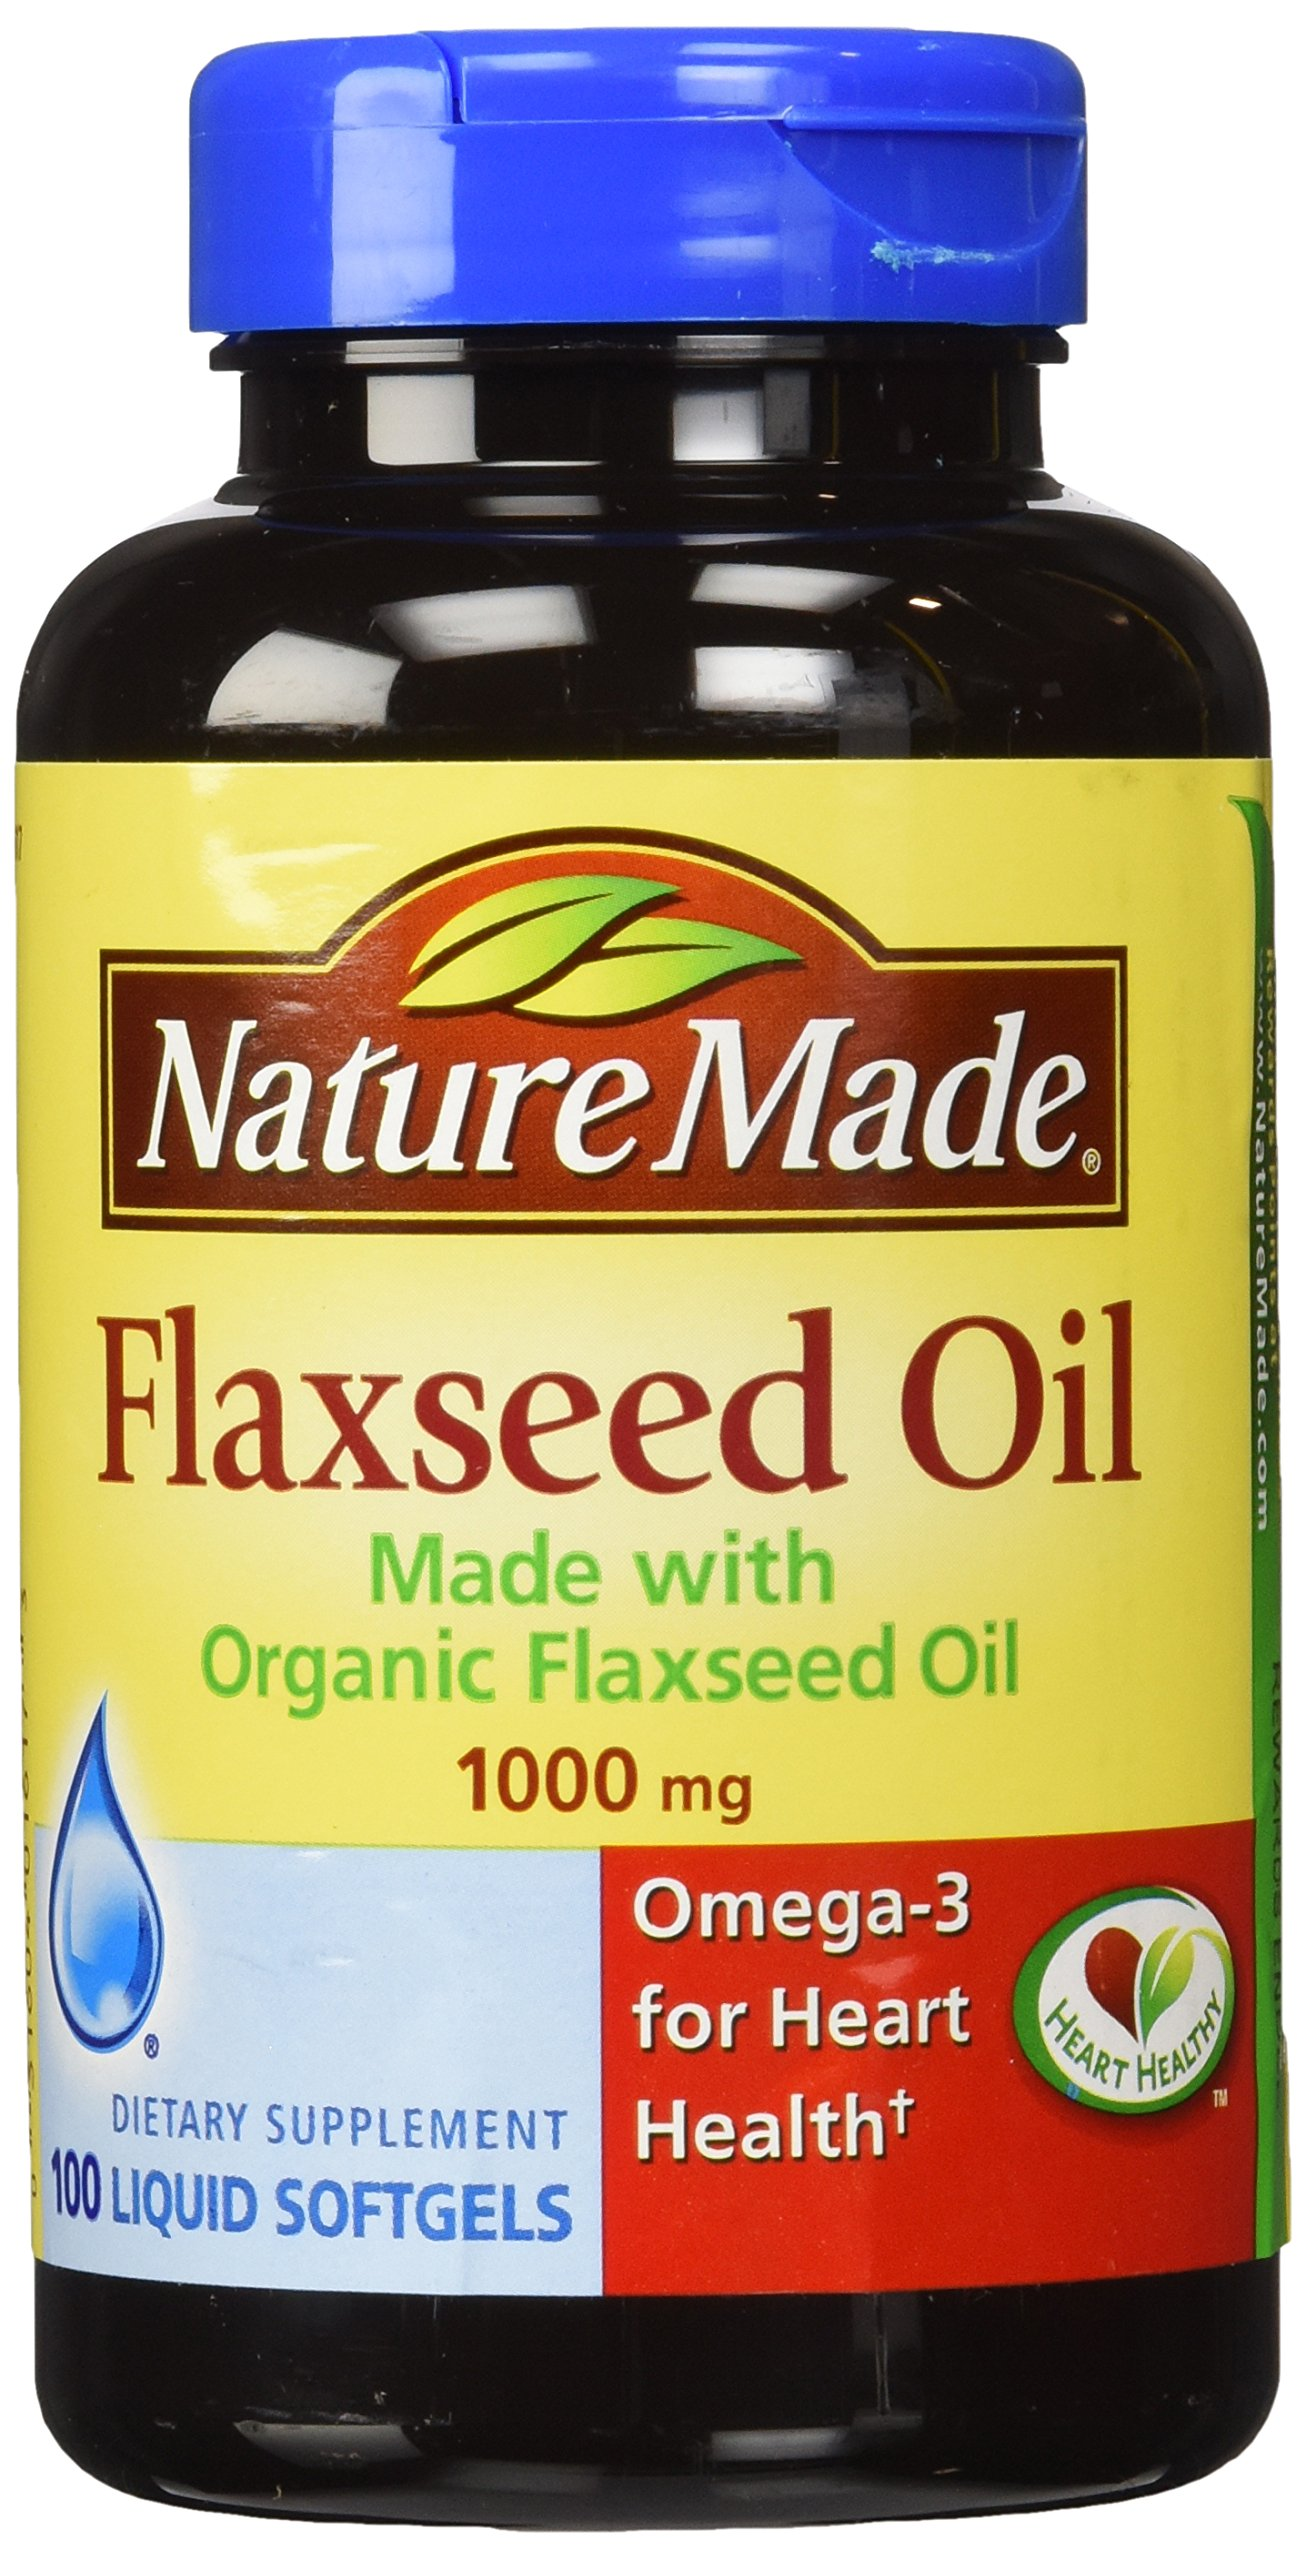 Nature Made Flaxseed Oil 1000mg 100 Softgels (3 Pack) by Nature Made